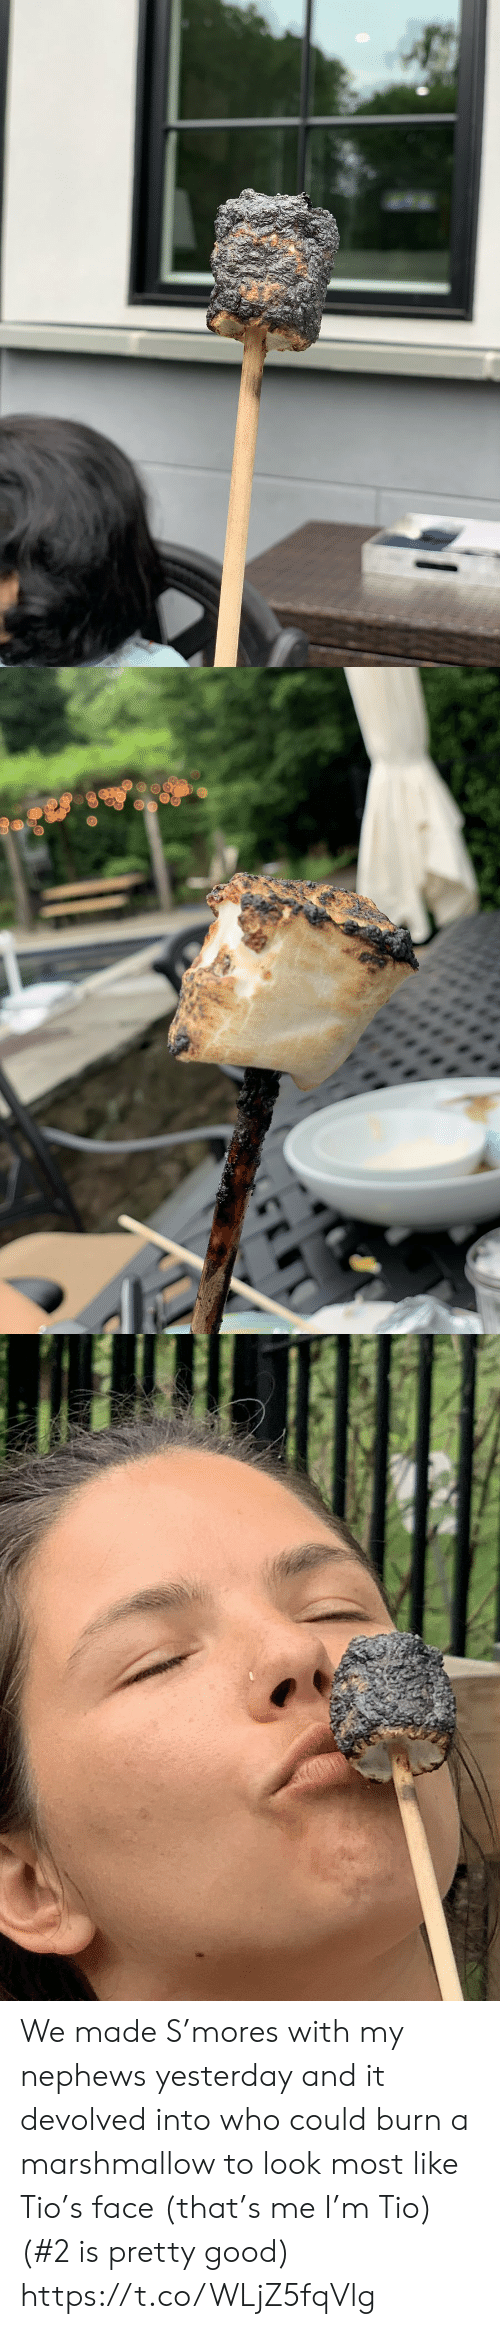 Memes, Good, and 🤖: We made S'mores with my nephews yesterday and it devolved into who could burn a marshmallow to look most like Tio's face  (that's me I'm Tio) (#2 is pretty good) https://t.co/WLjZ5fqVlg